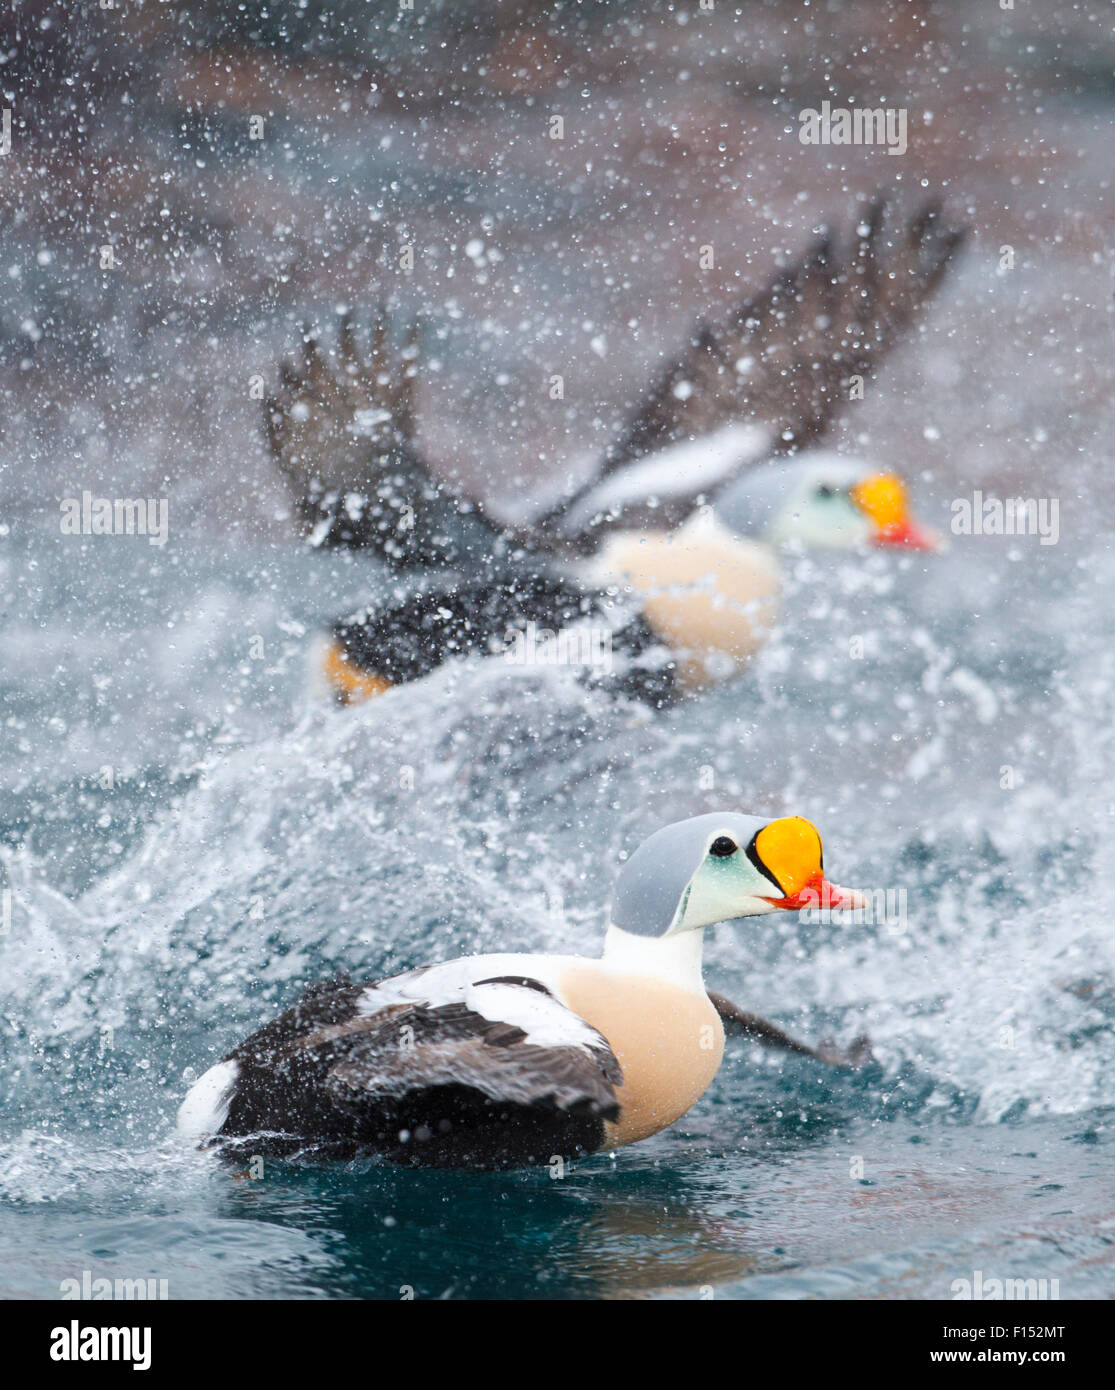 Male King eiders (Somateria spectabilis) on taking off from the waves and splashing water Batsfjord, Norway, March. - Stock Image